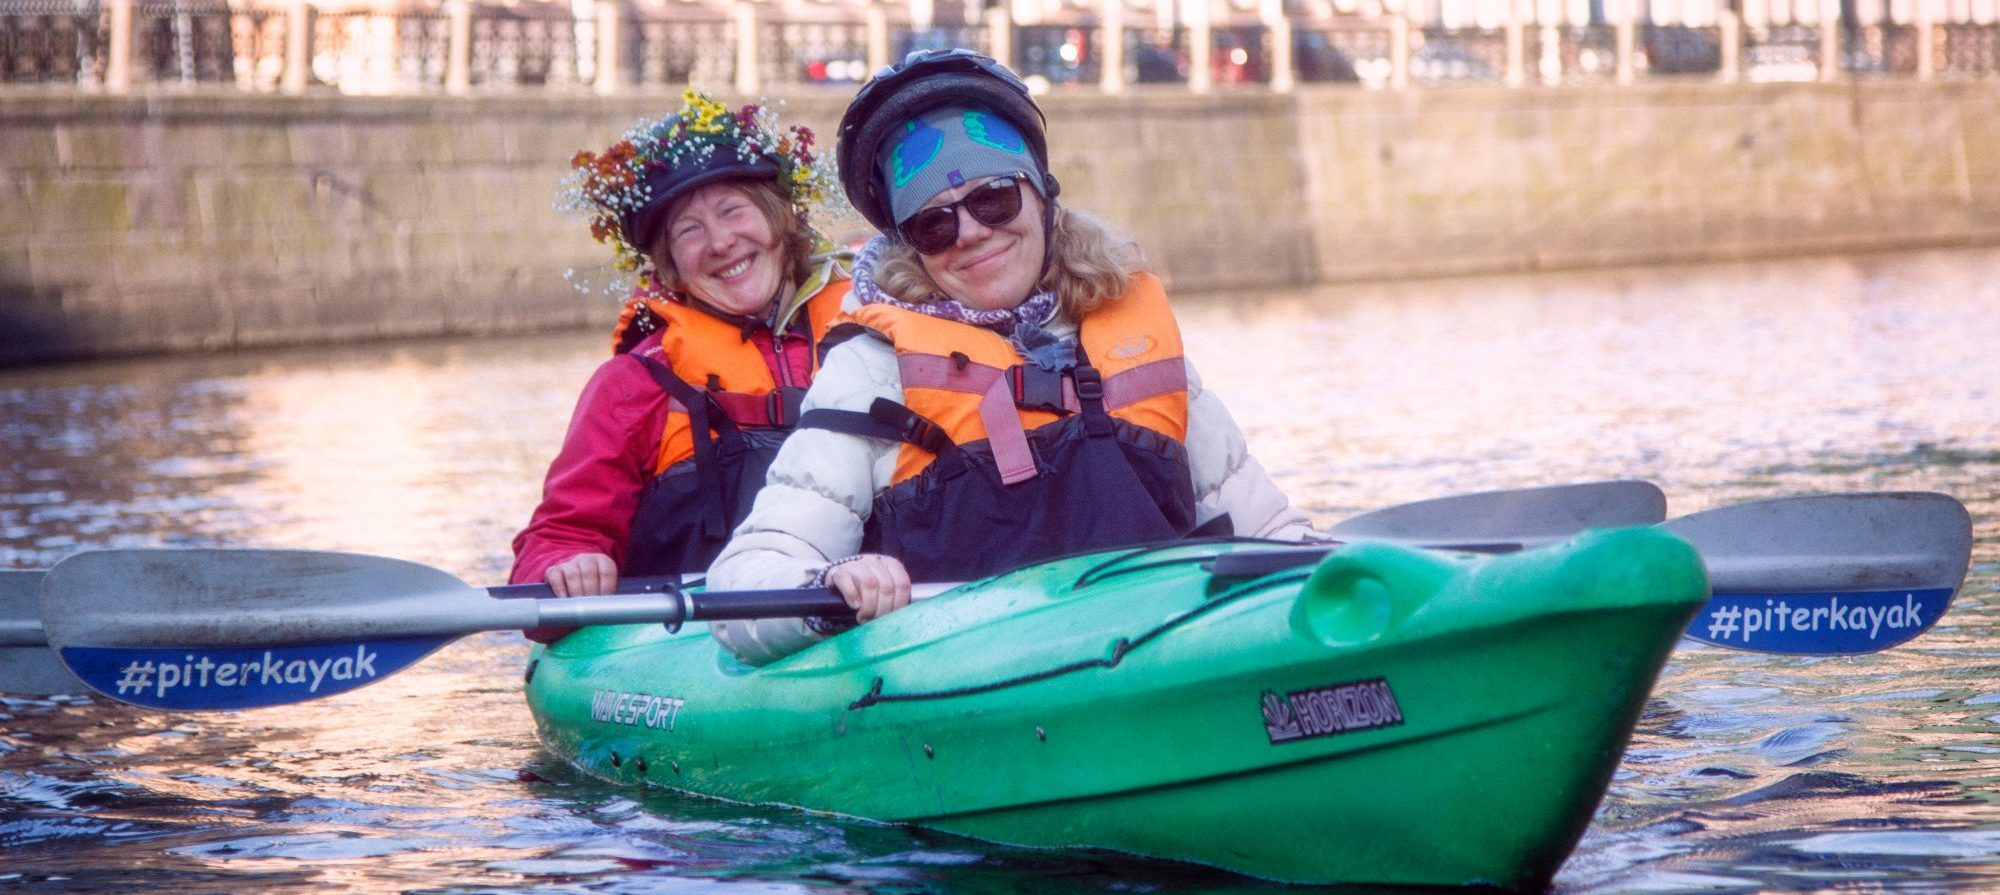 2 women kayaking